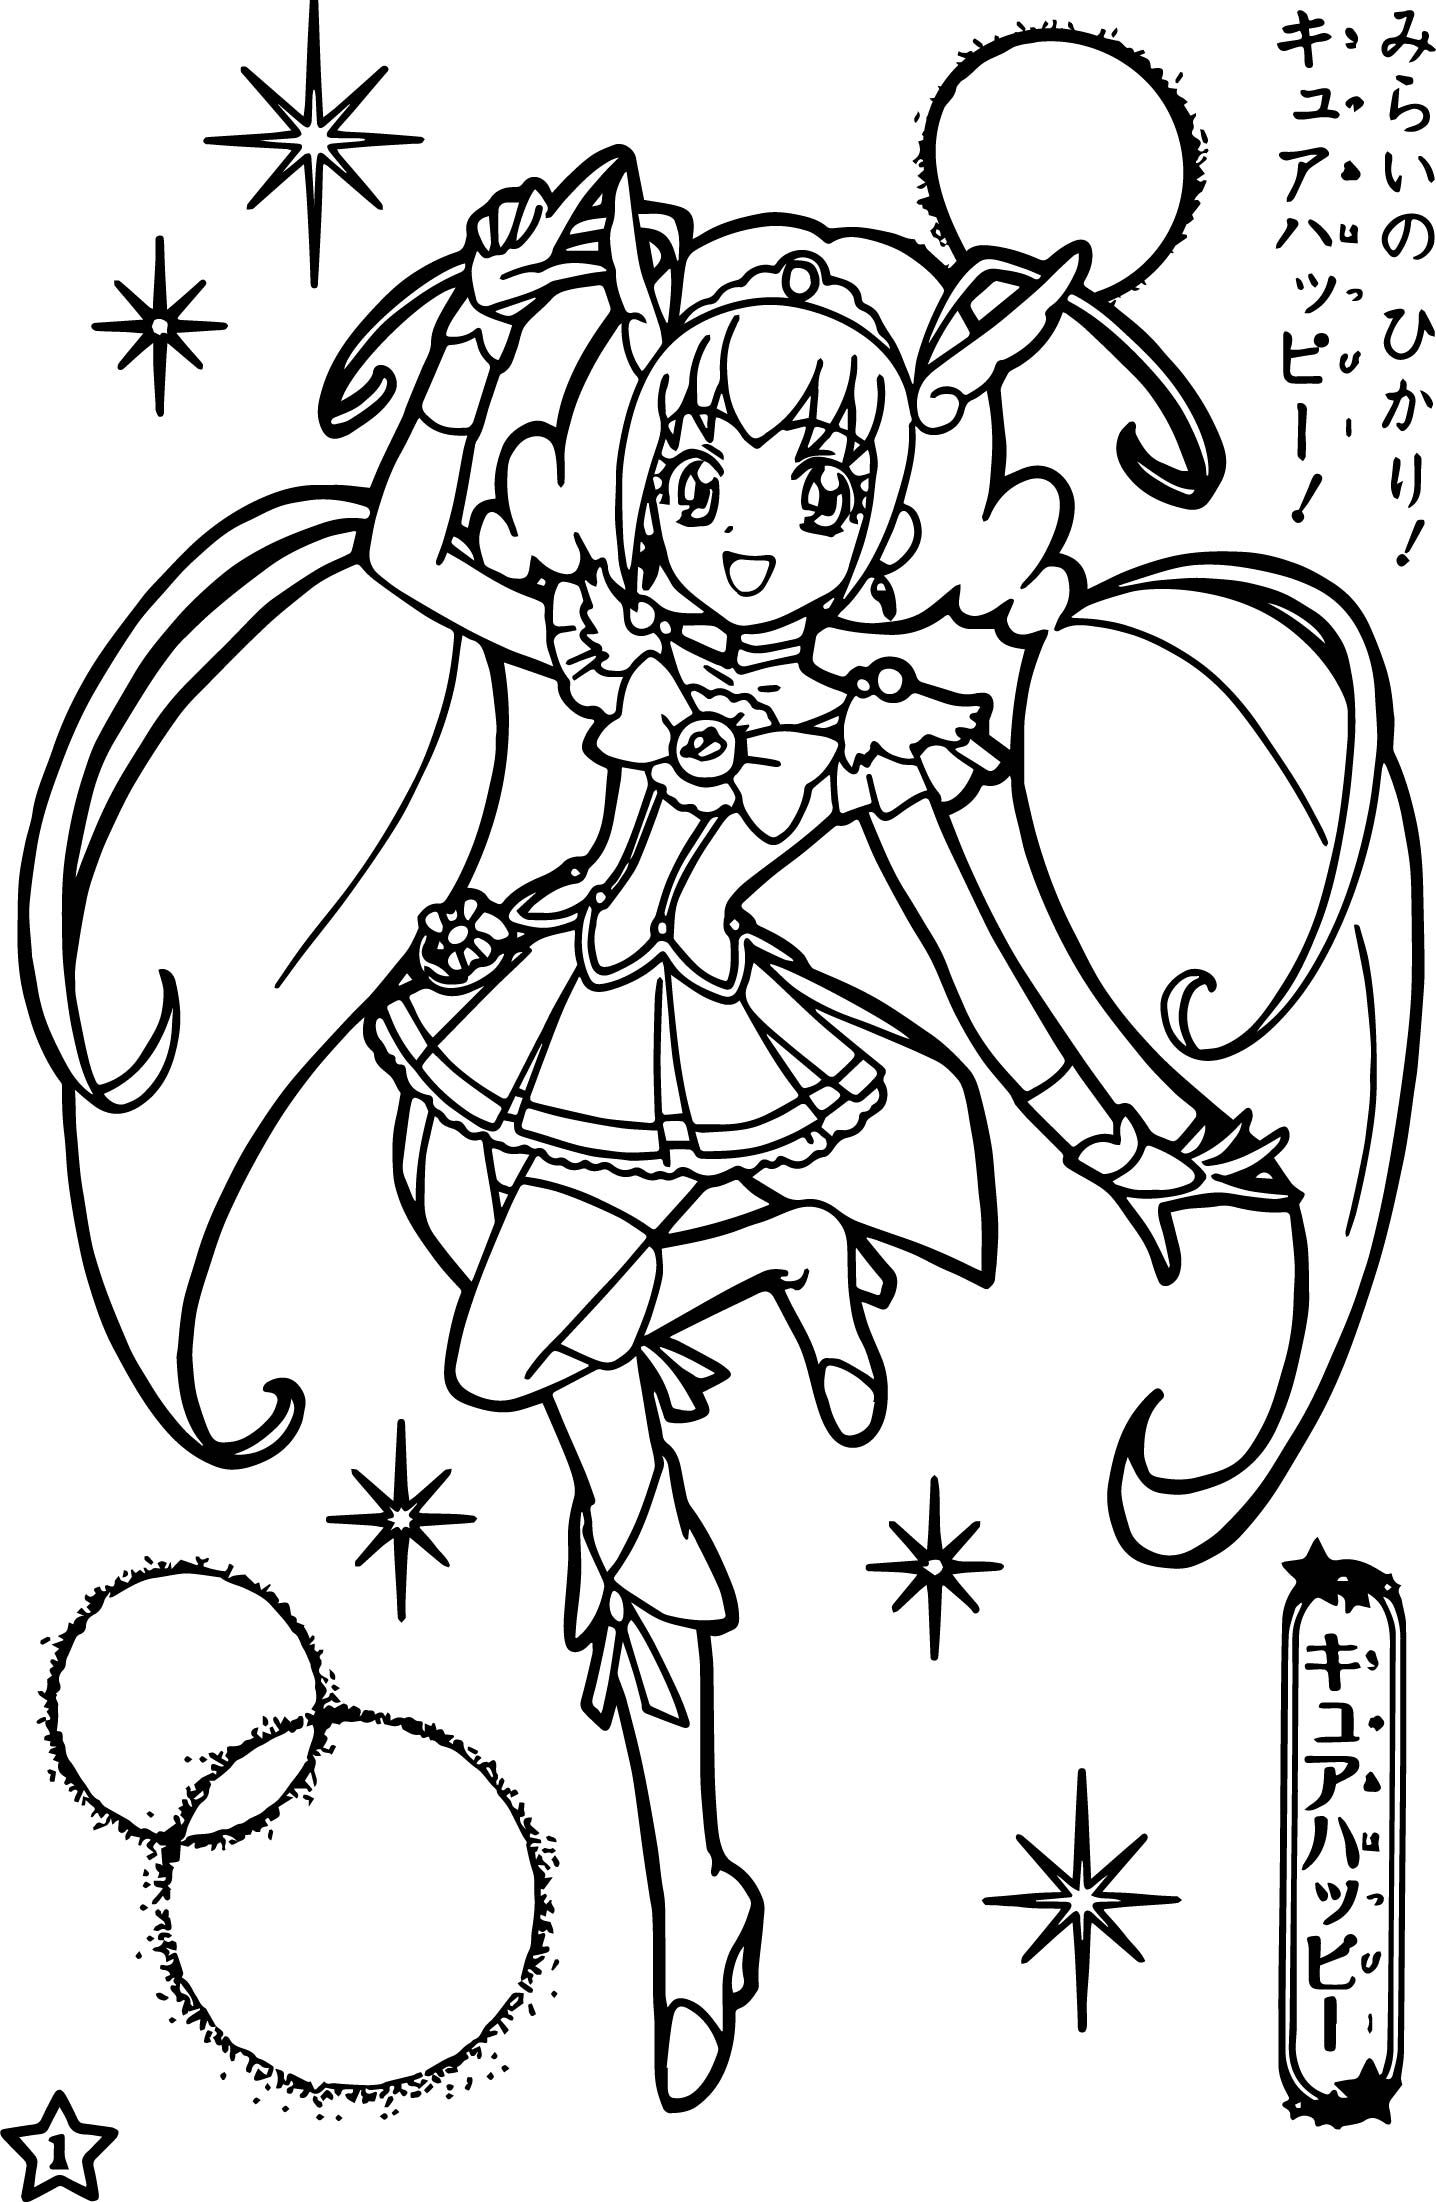 27 Pretty Image Of Glitter Force Coloring Pages Entitlementtrap Com Moon Coloring Pages Glitter Force Characters Coloring Pages